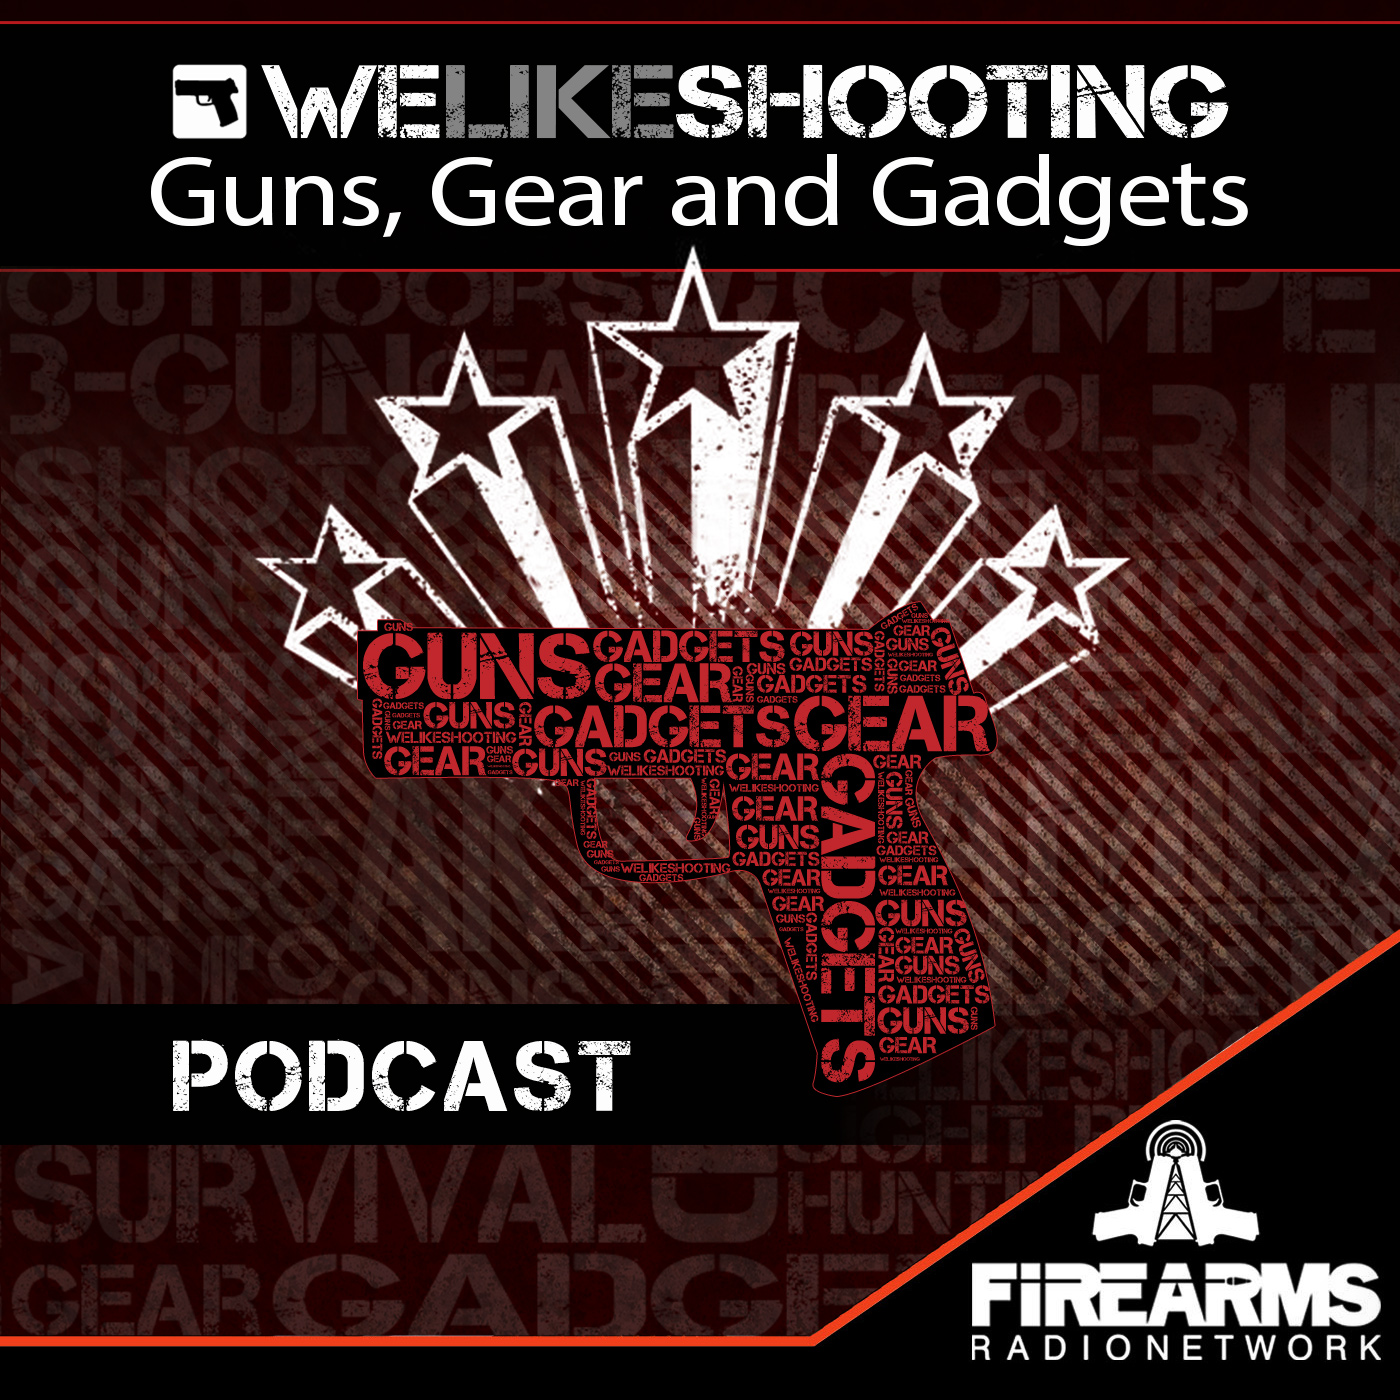 We Like Shooting podcast picked up by The Firearms Radio Network